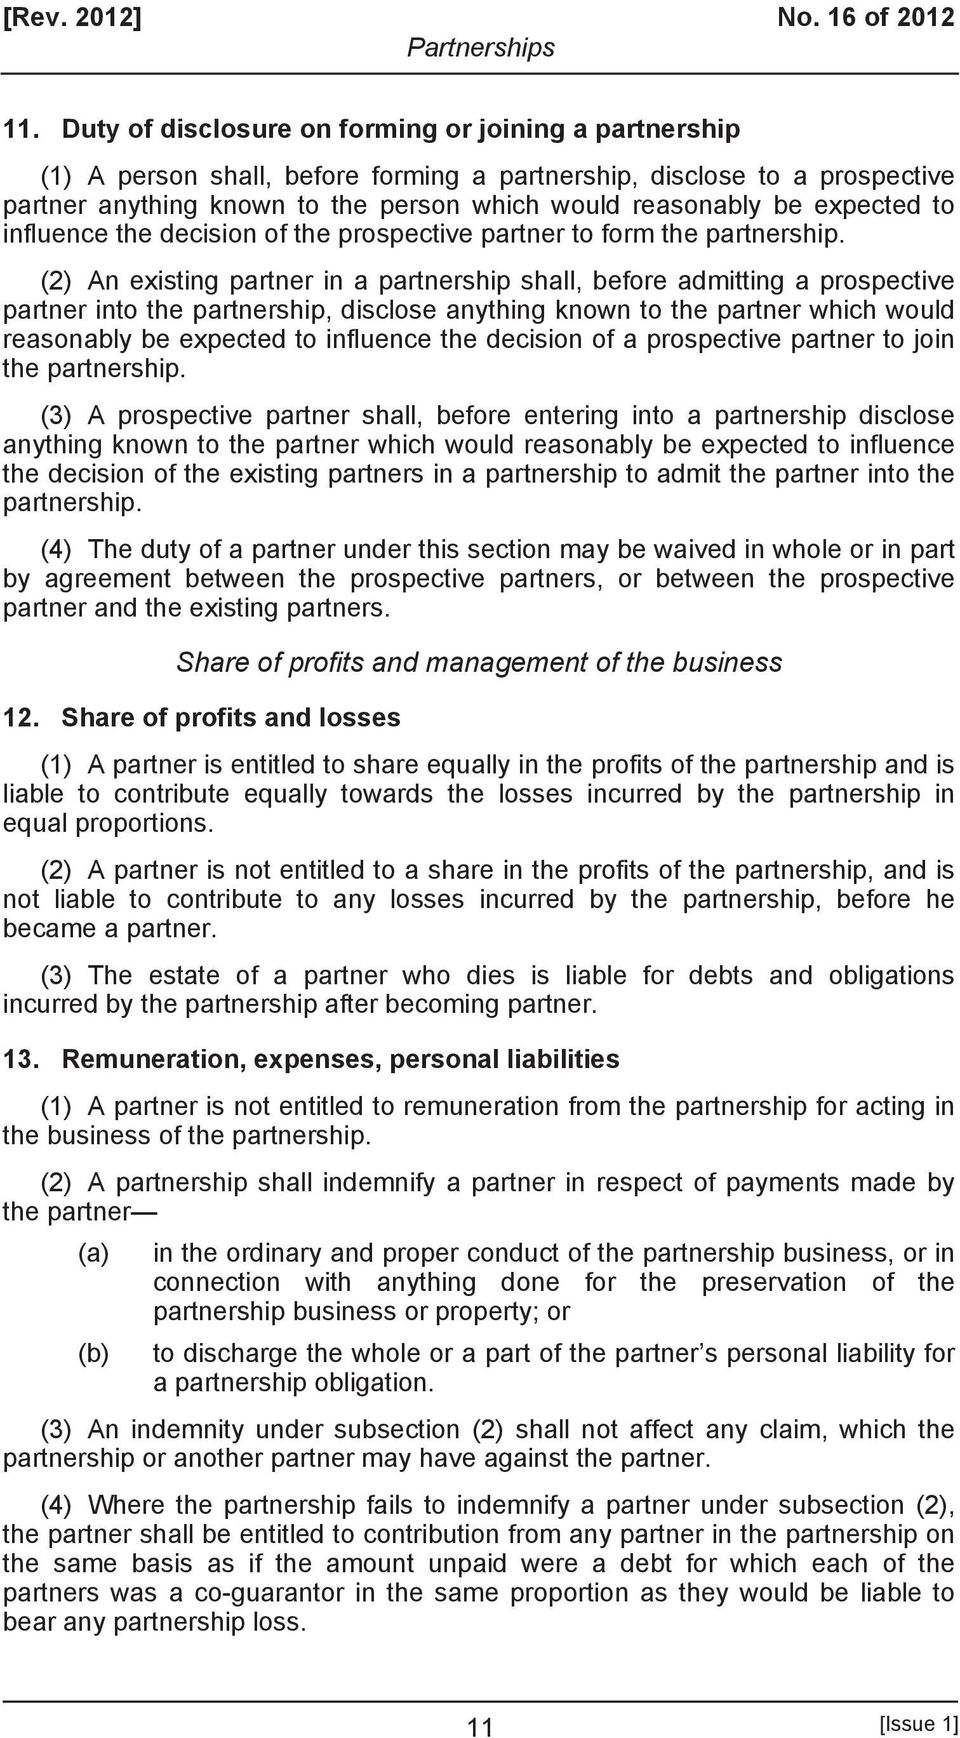 expected to influence the decision of the prospective partner to form the partnership.